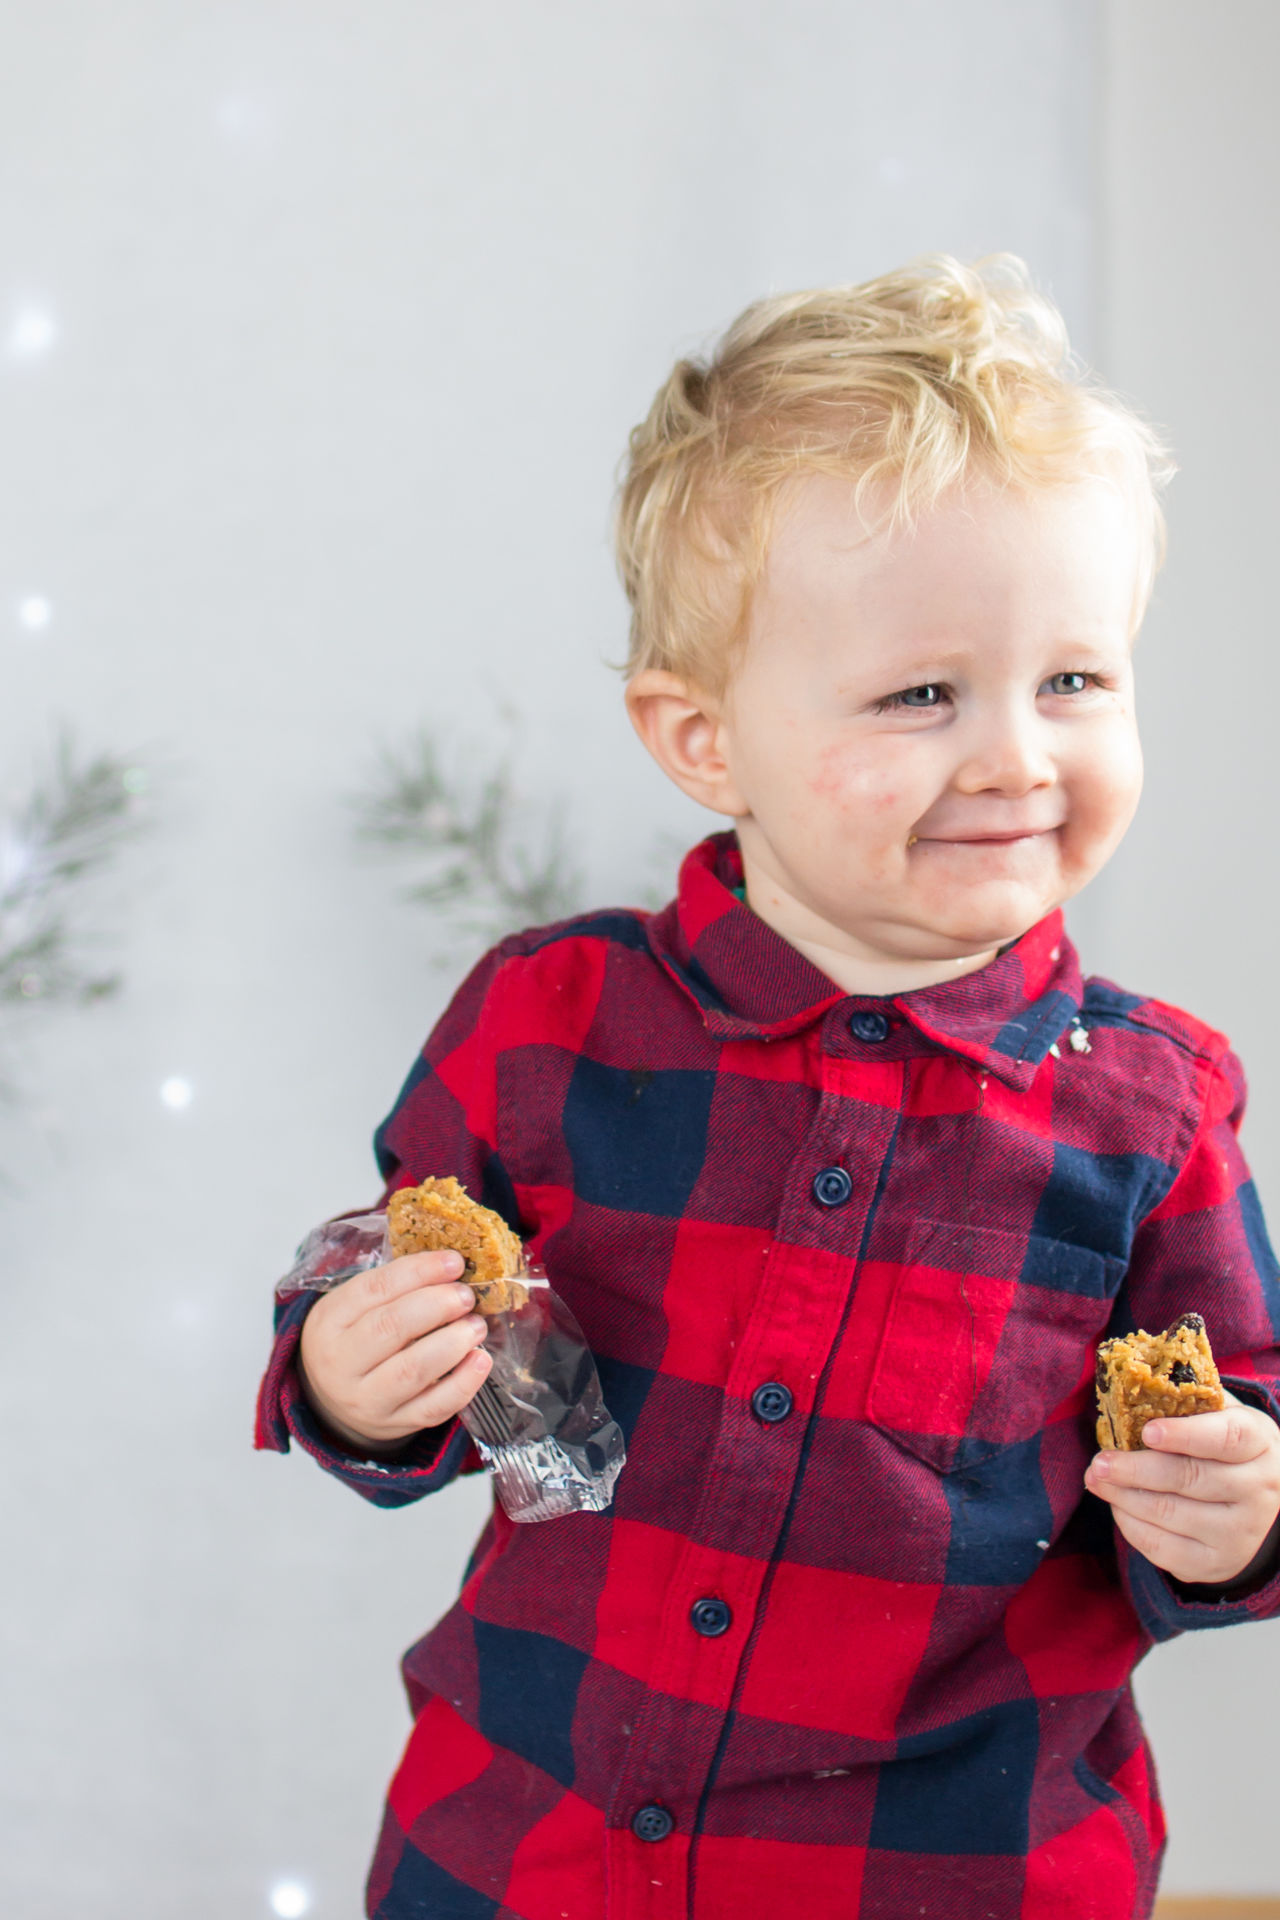 A bit of cake! Biscuit Boys Childhood Christmas Christmas Christmas Fun Cute Cute Christmas Day Joy Outdoors People Portrait Portraits Smiles Snow Streamzoofamily Toddler  Winter Winter Winter Joy Winter Wonder